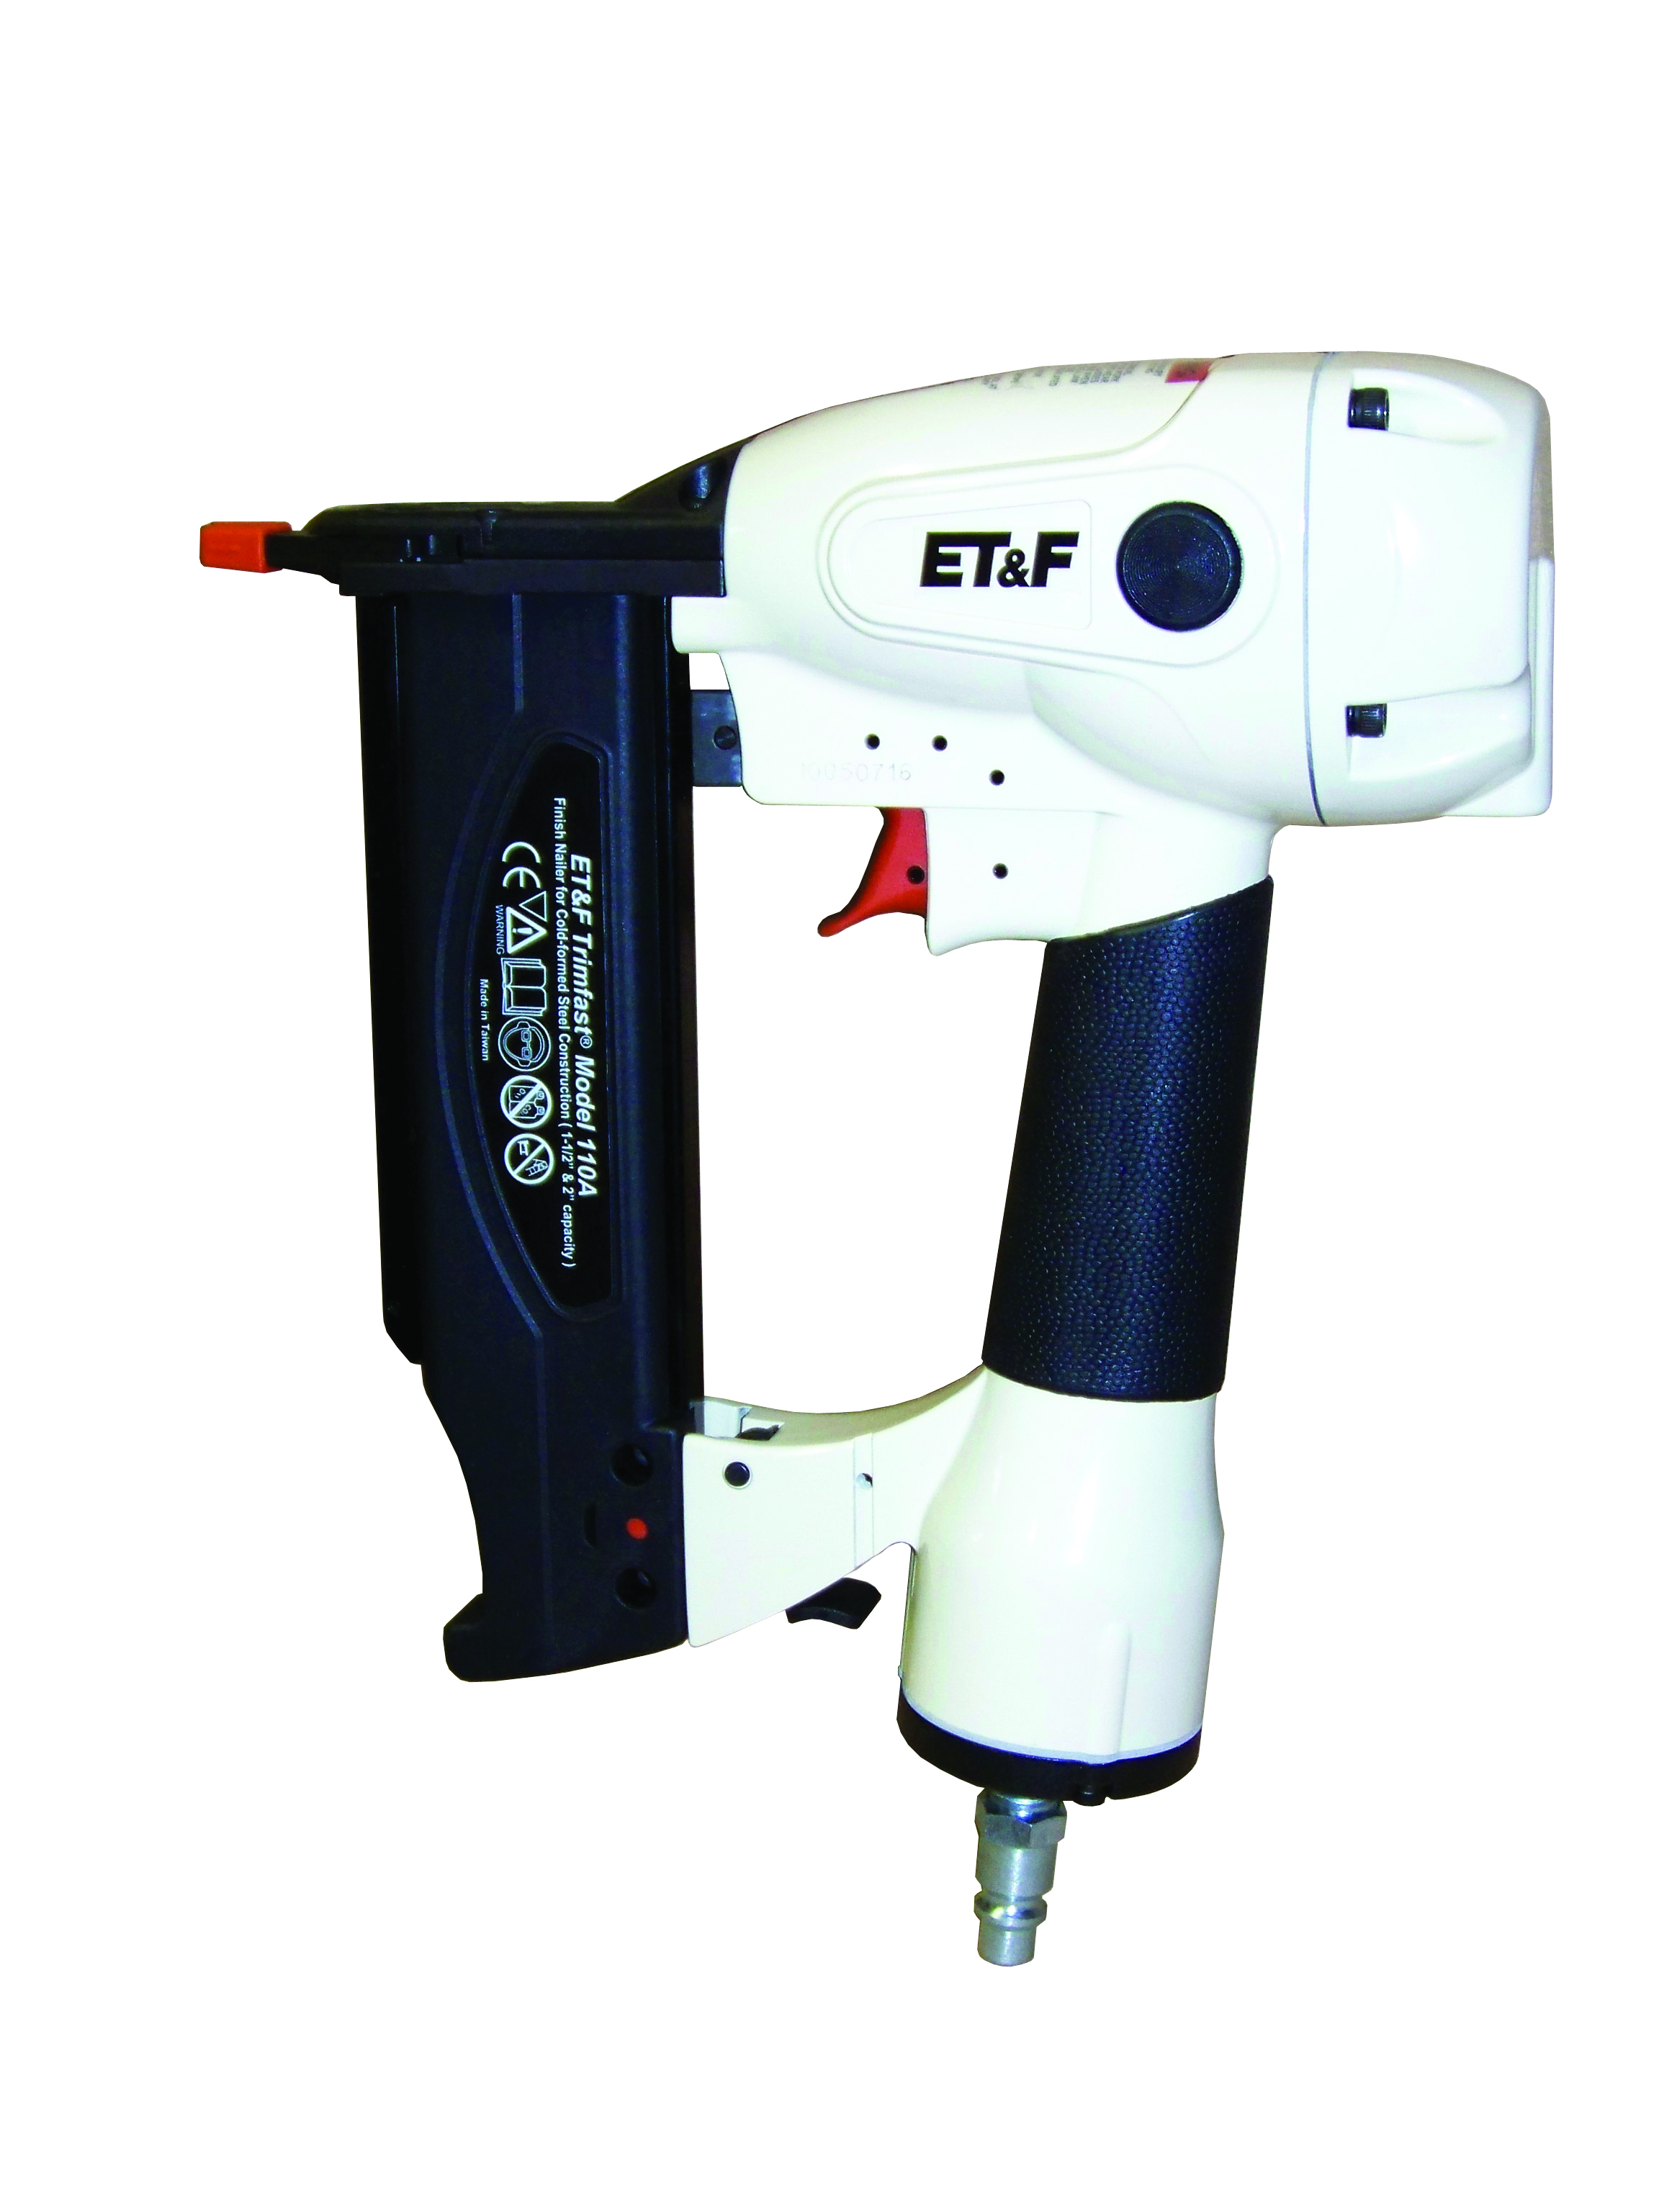 Nail In Tire Repair >> PNEUMATIC & CORDLESS NAILING SYSTEMS AND AIR TOOLS | ET&F ...